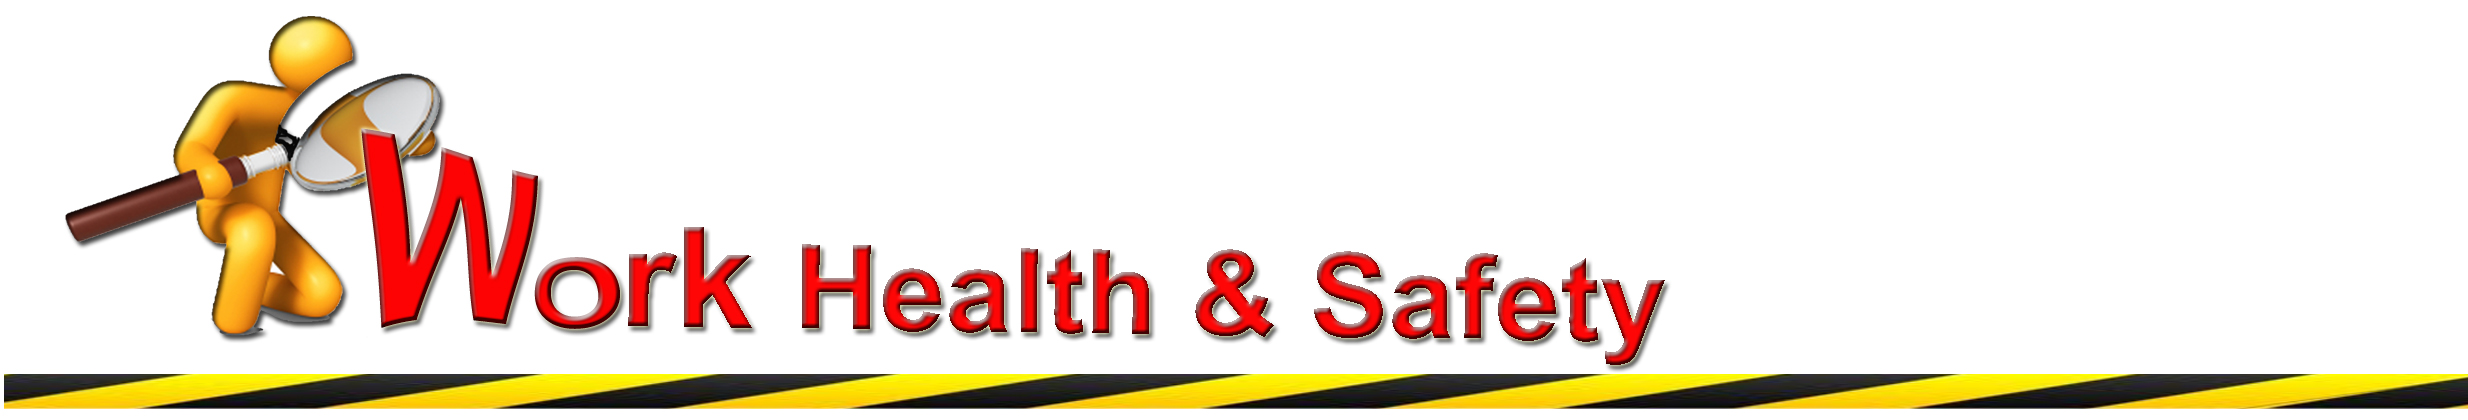 Work Health Amp Safety Training Gt Courses Gt Mpa Training